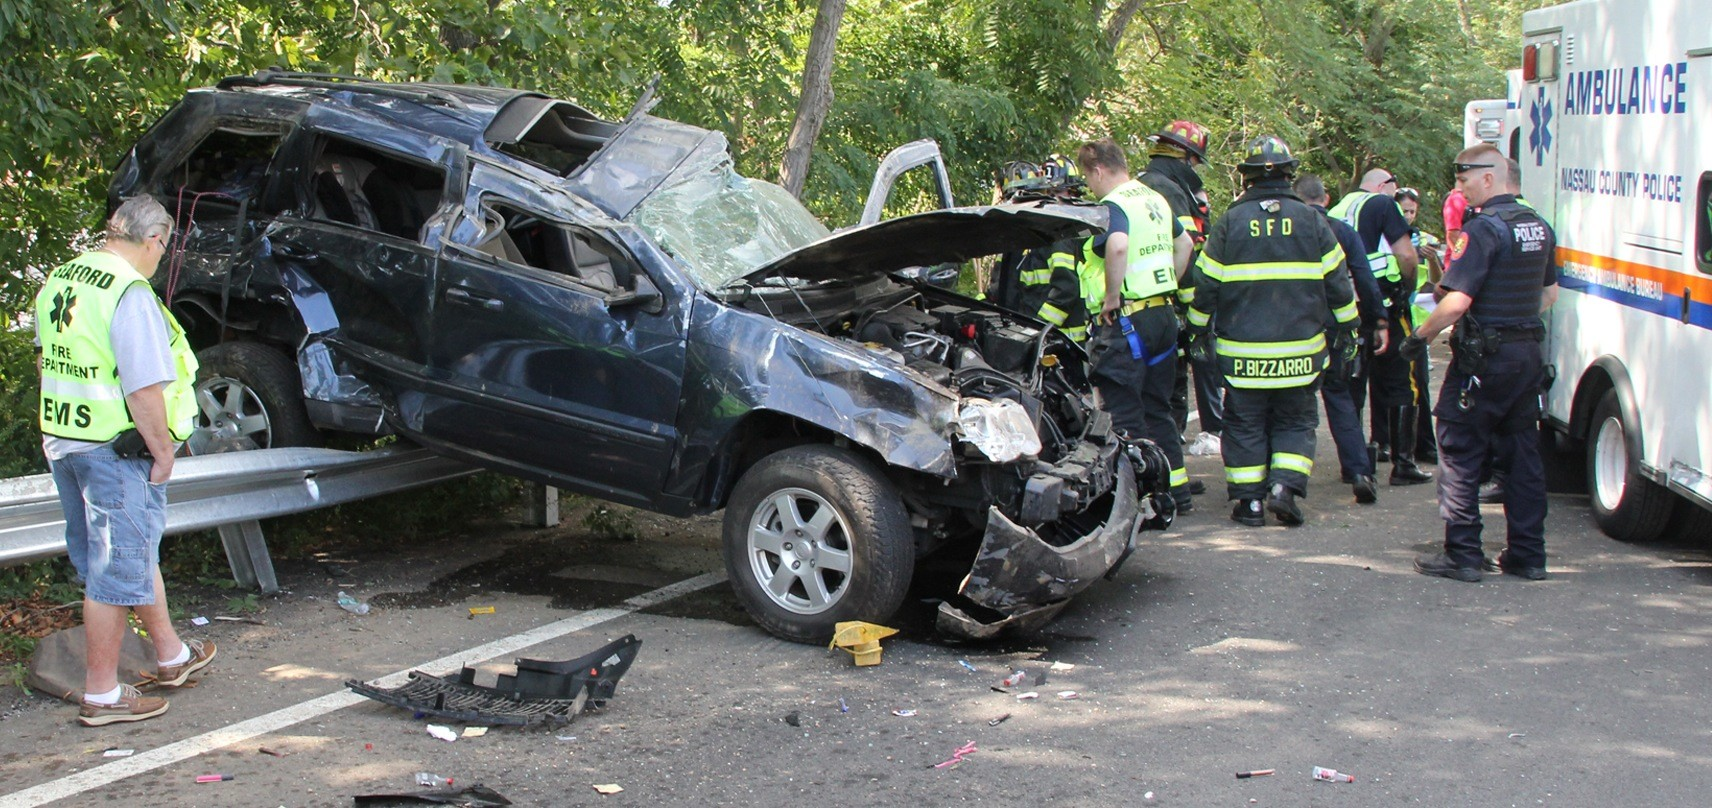 Emergency responders from the Nassau County Police and Seaford Fire departments responded to an accident on the Seaford-Oyster Bay Expressway on Aug. 26 in which the driver allegedly drove drunk with her two children in the car.